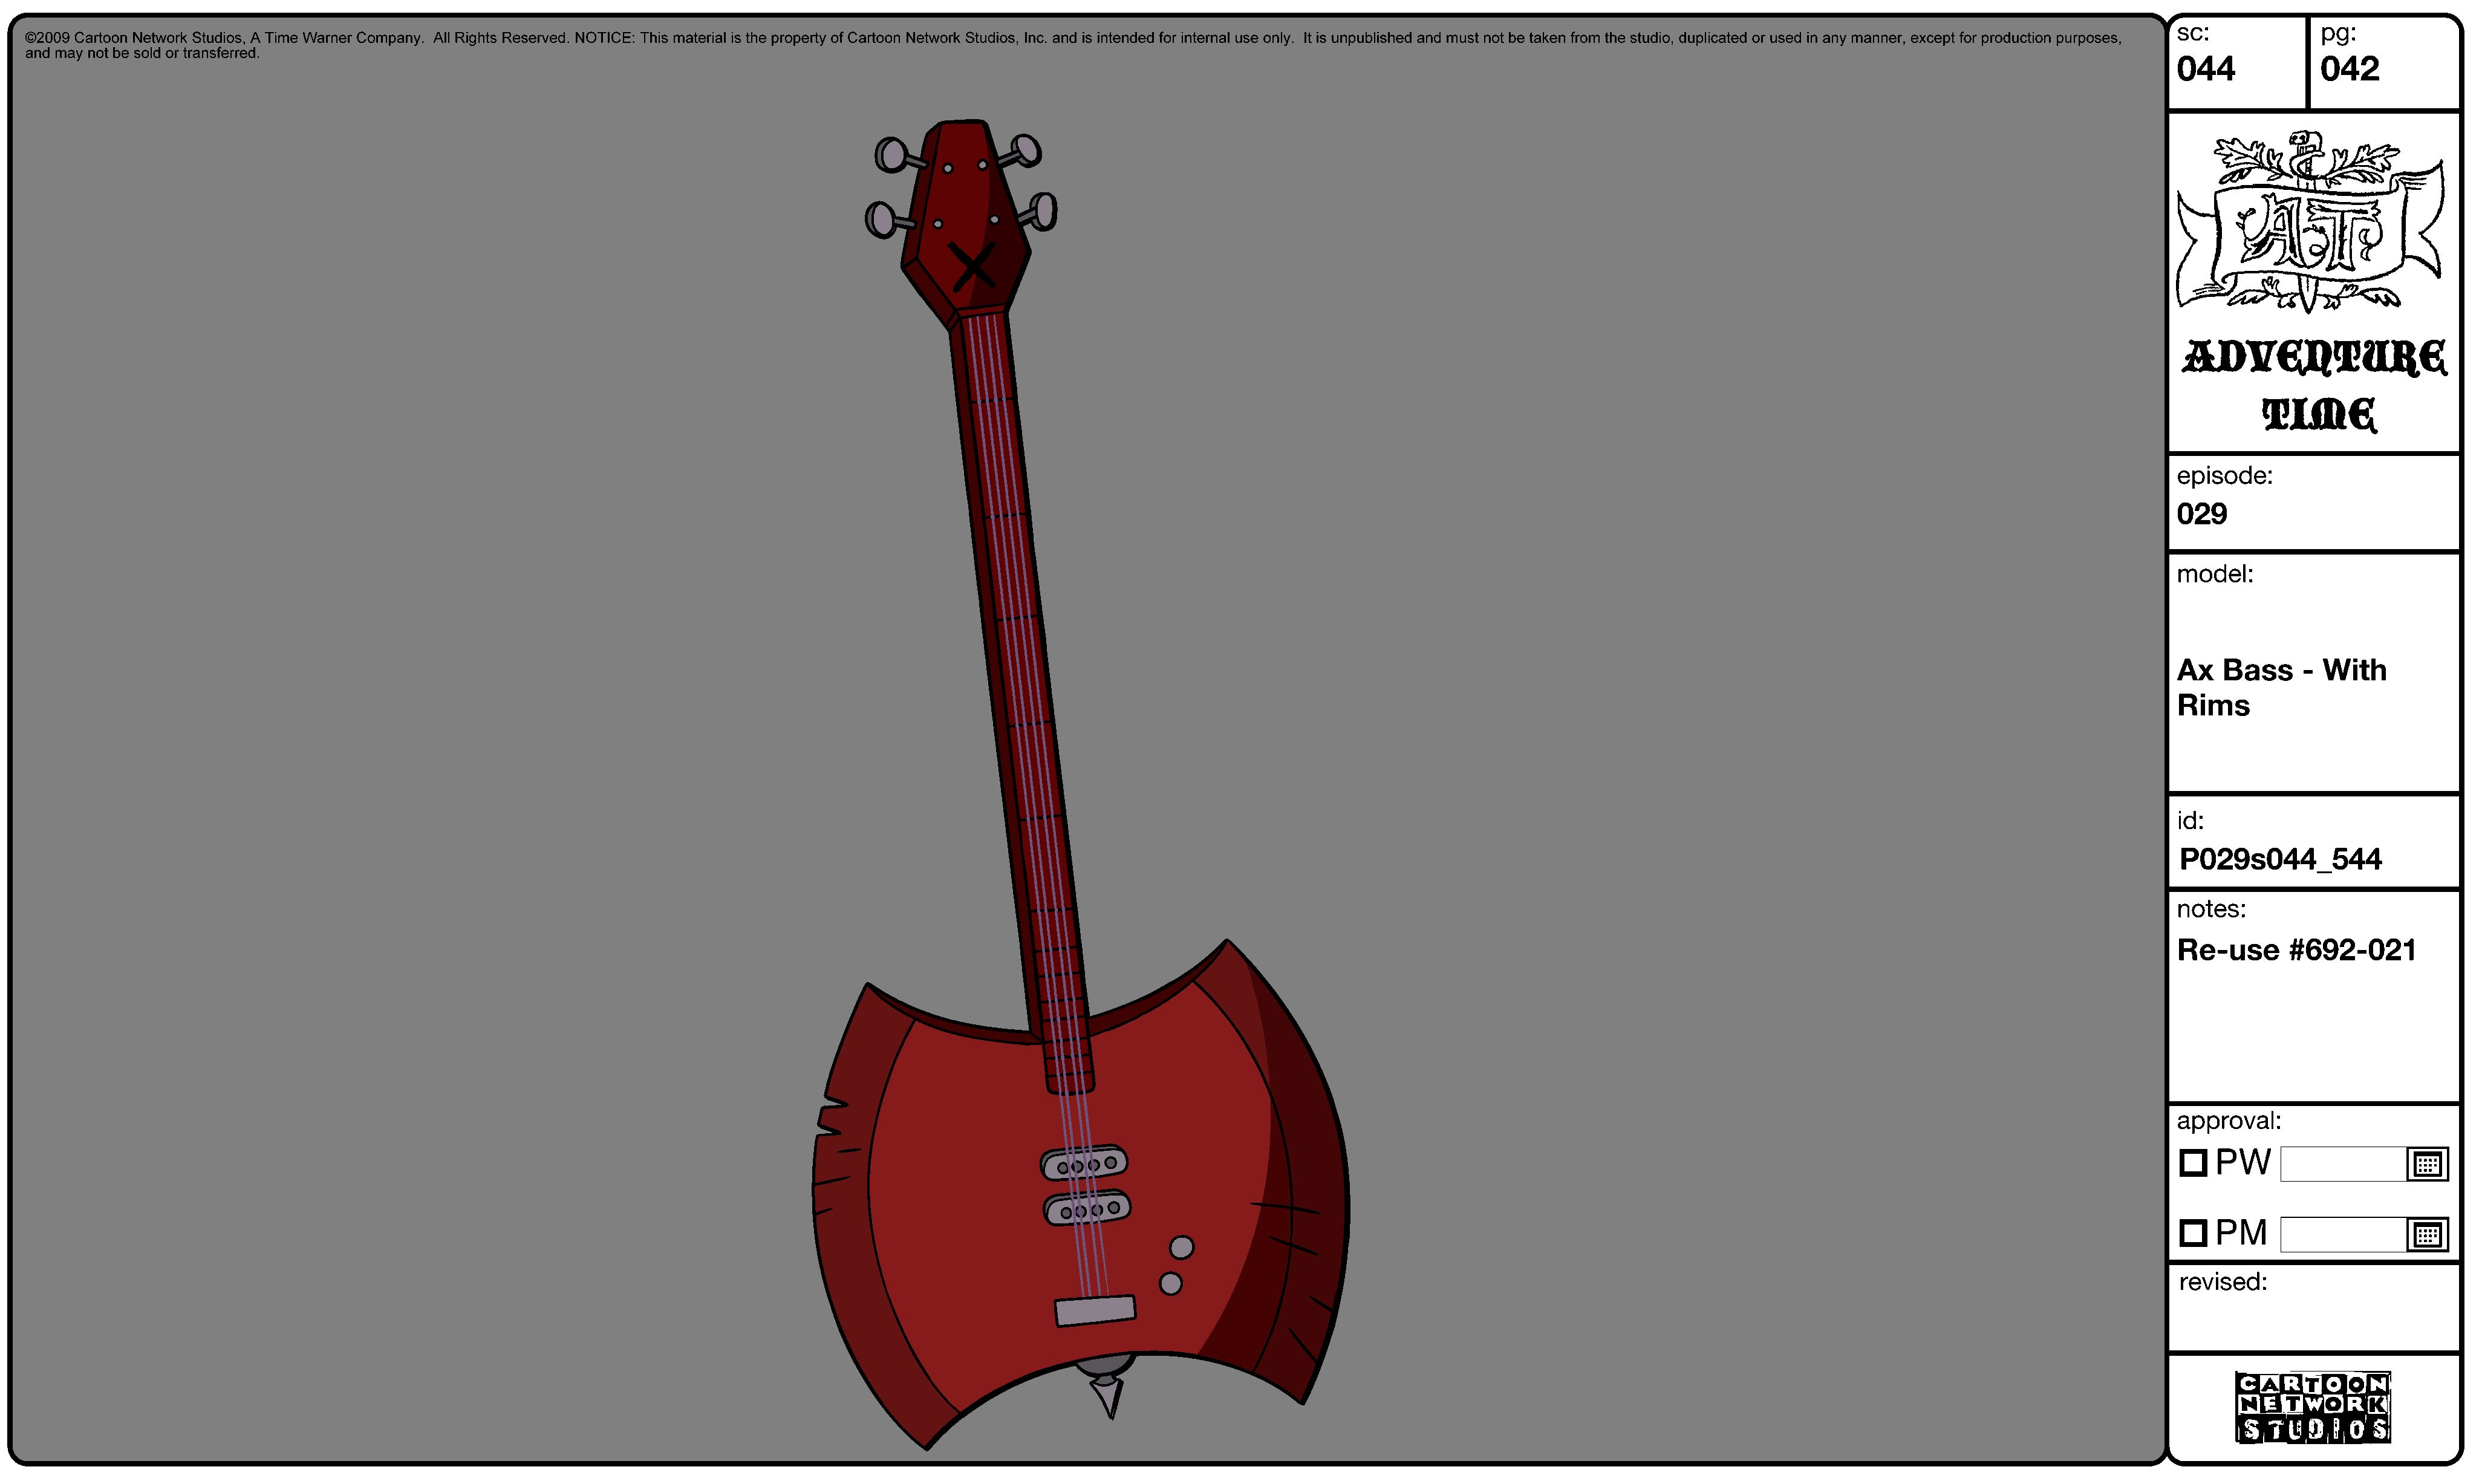 File:Modelsheet axbass withrims.png